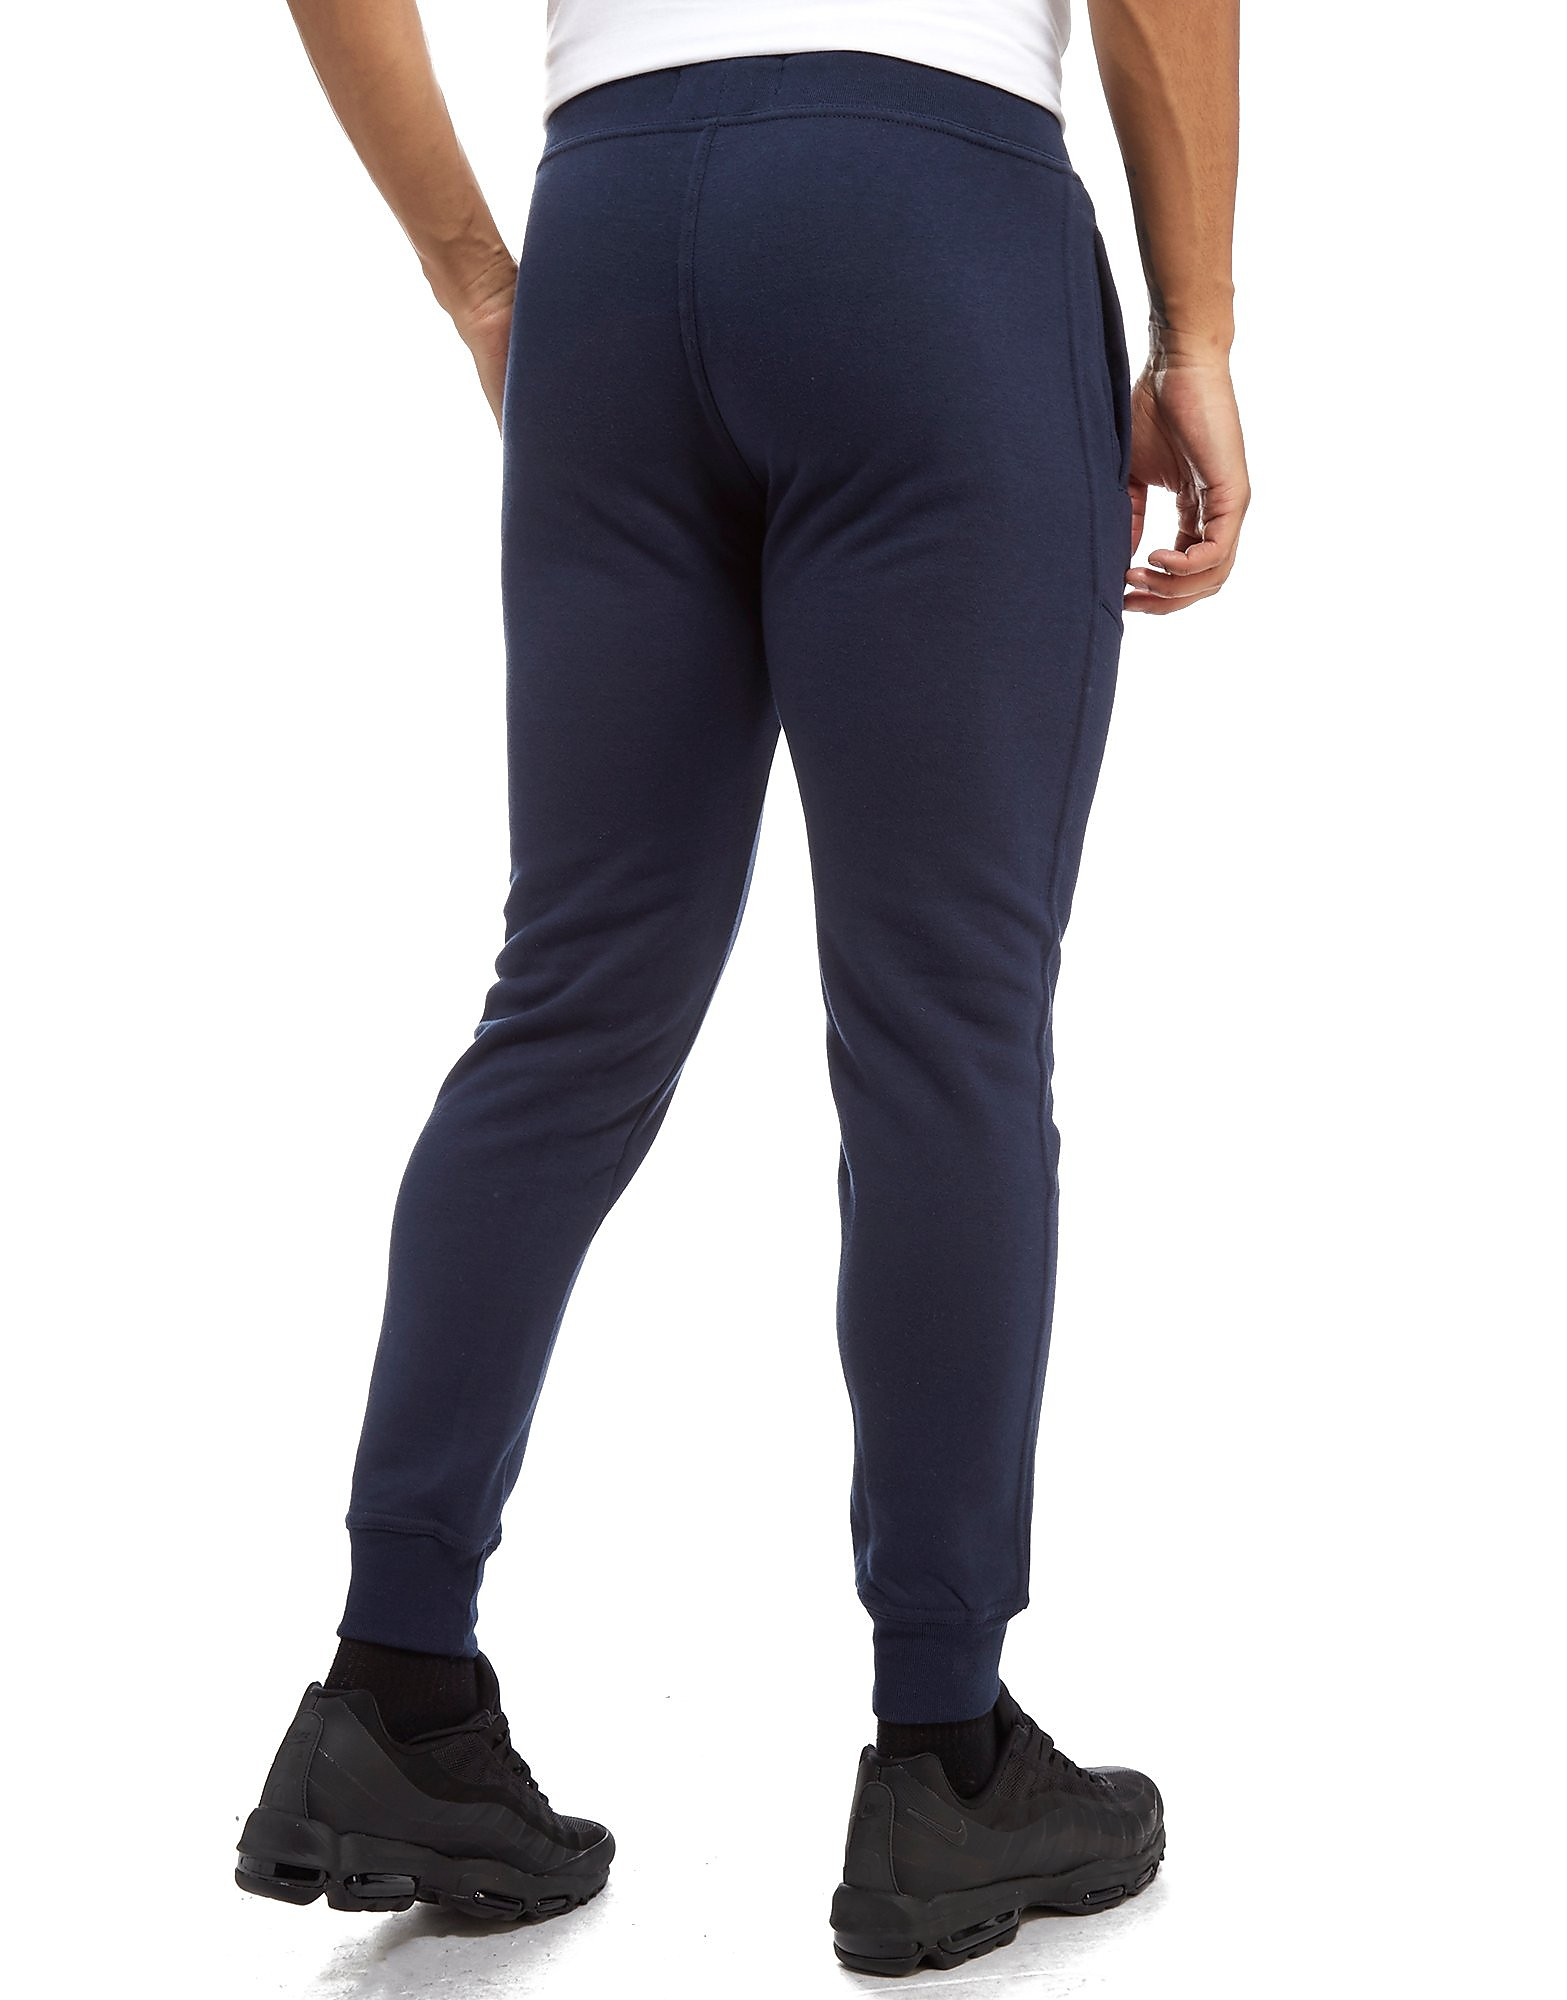 McKenzie pantalón de chándal Stirling Fleece